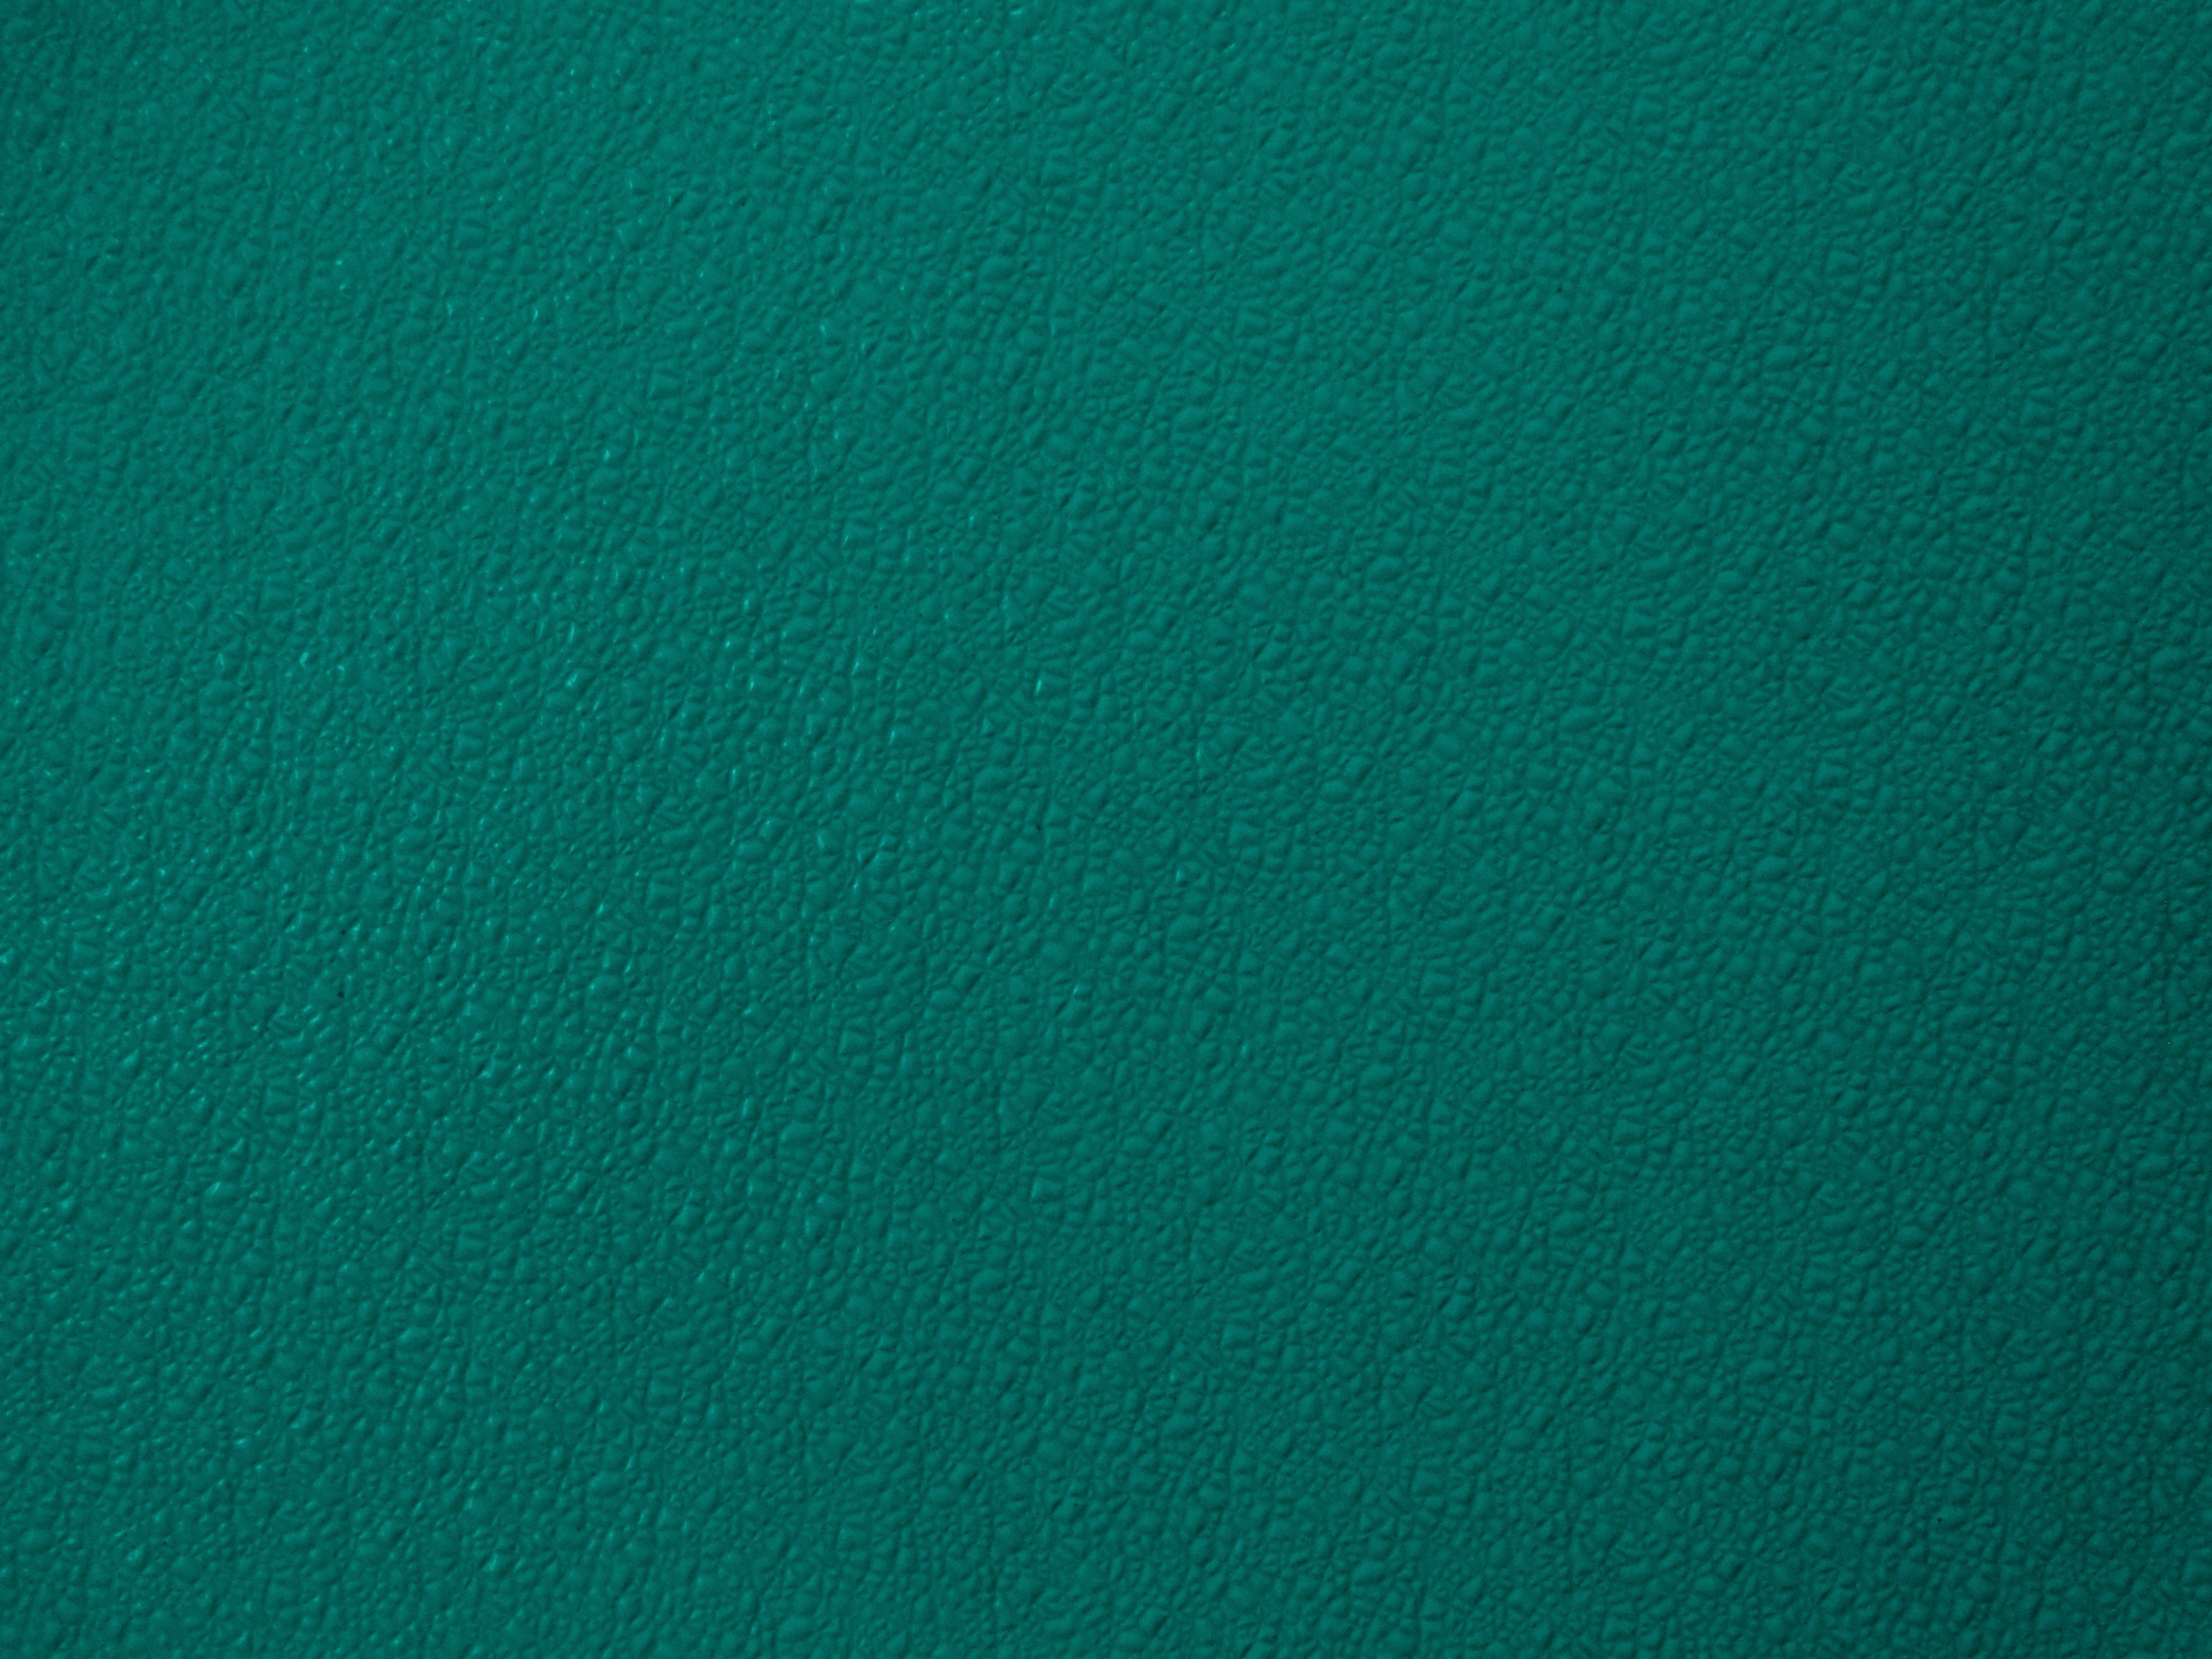 The Texture Of Teal And Turquoise: Bumpy Teal Plastic Texture Picture